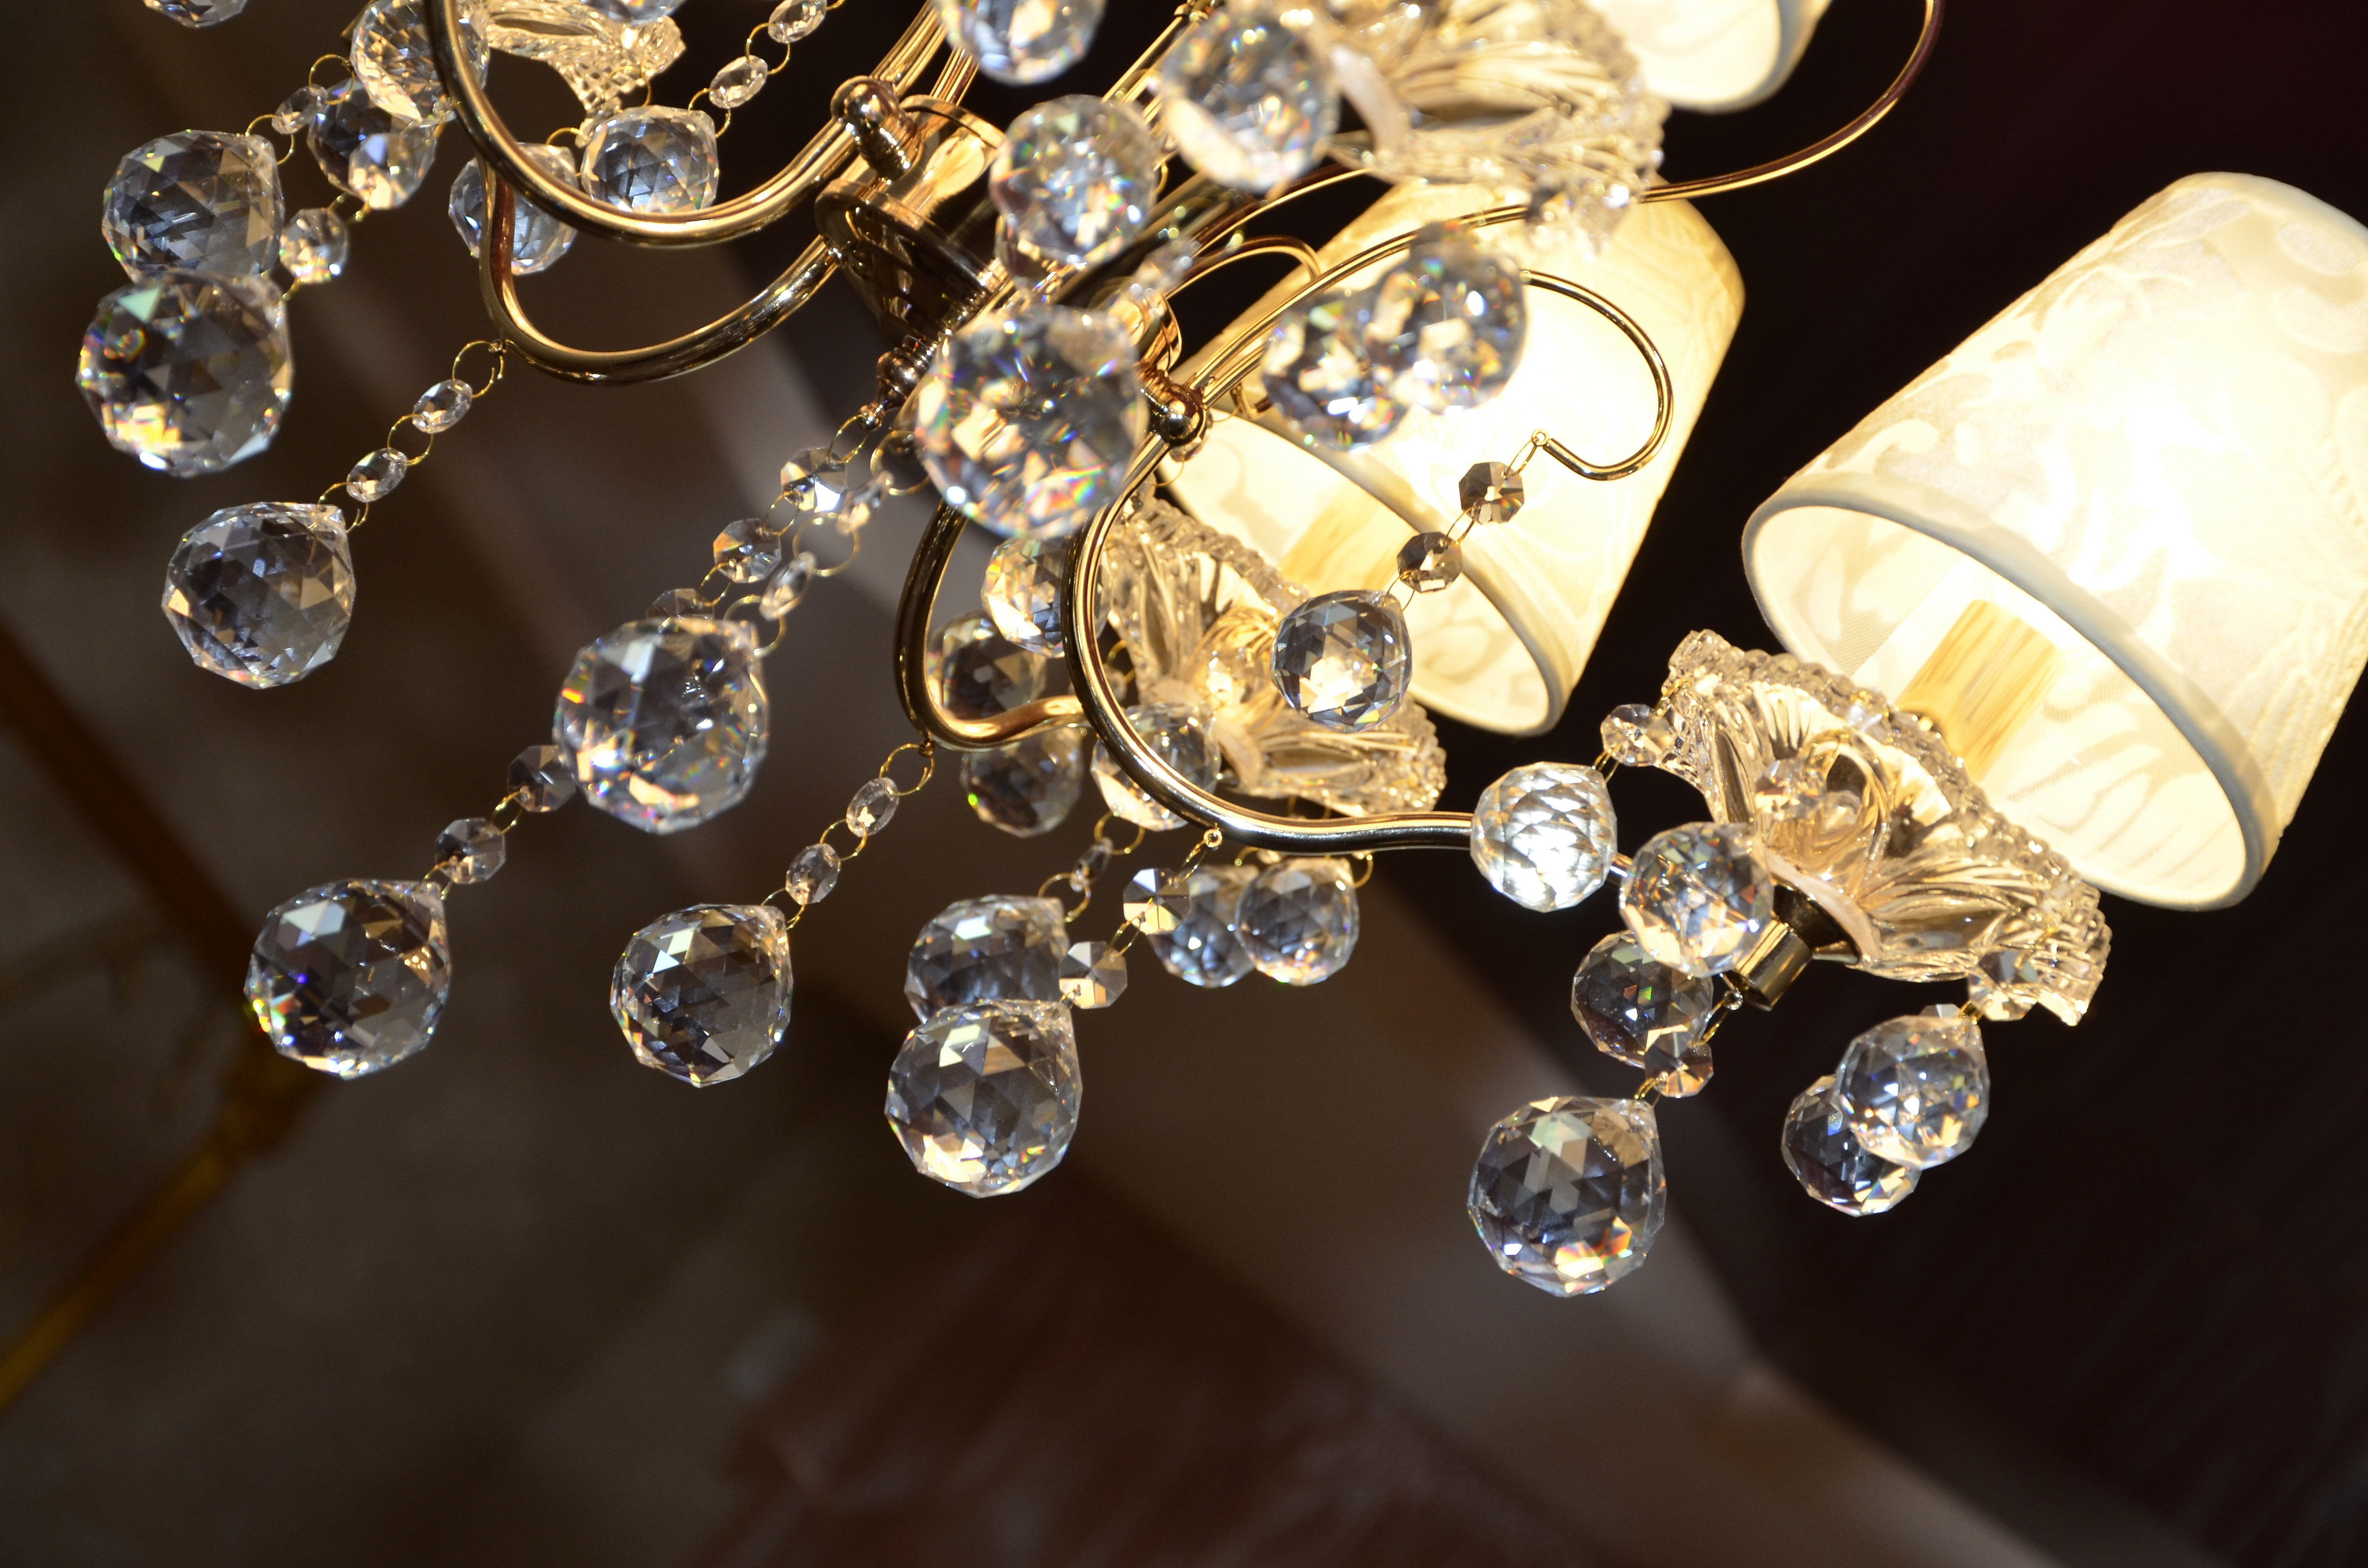 Free stock photo of antique chandelier classic